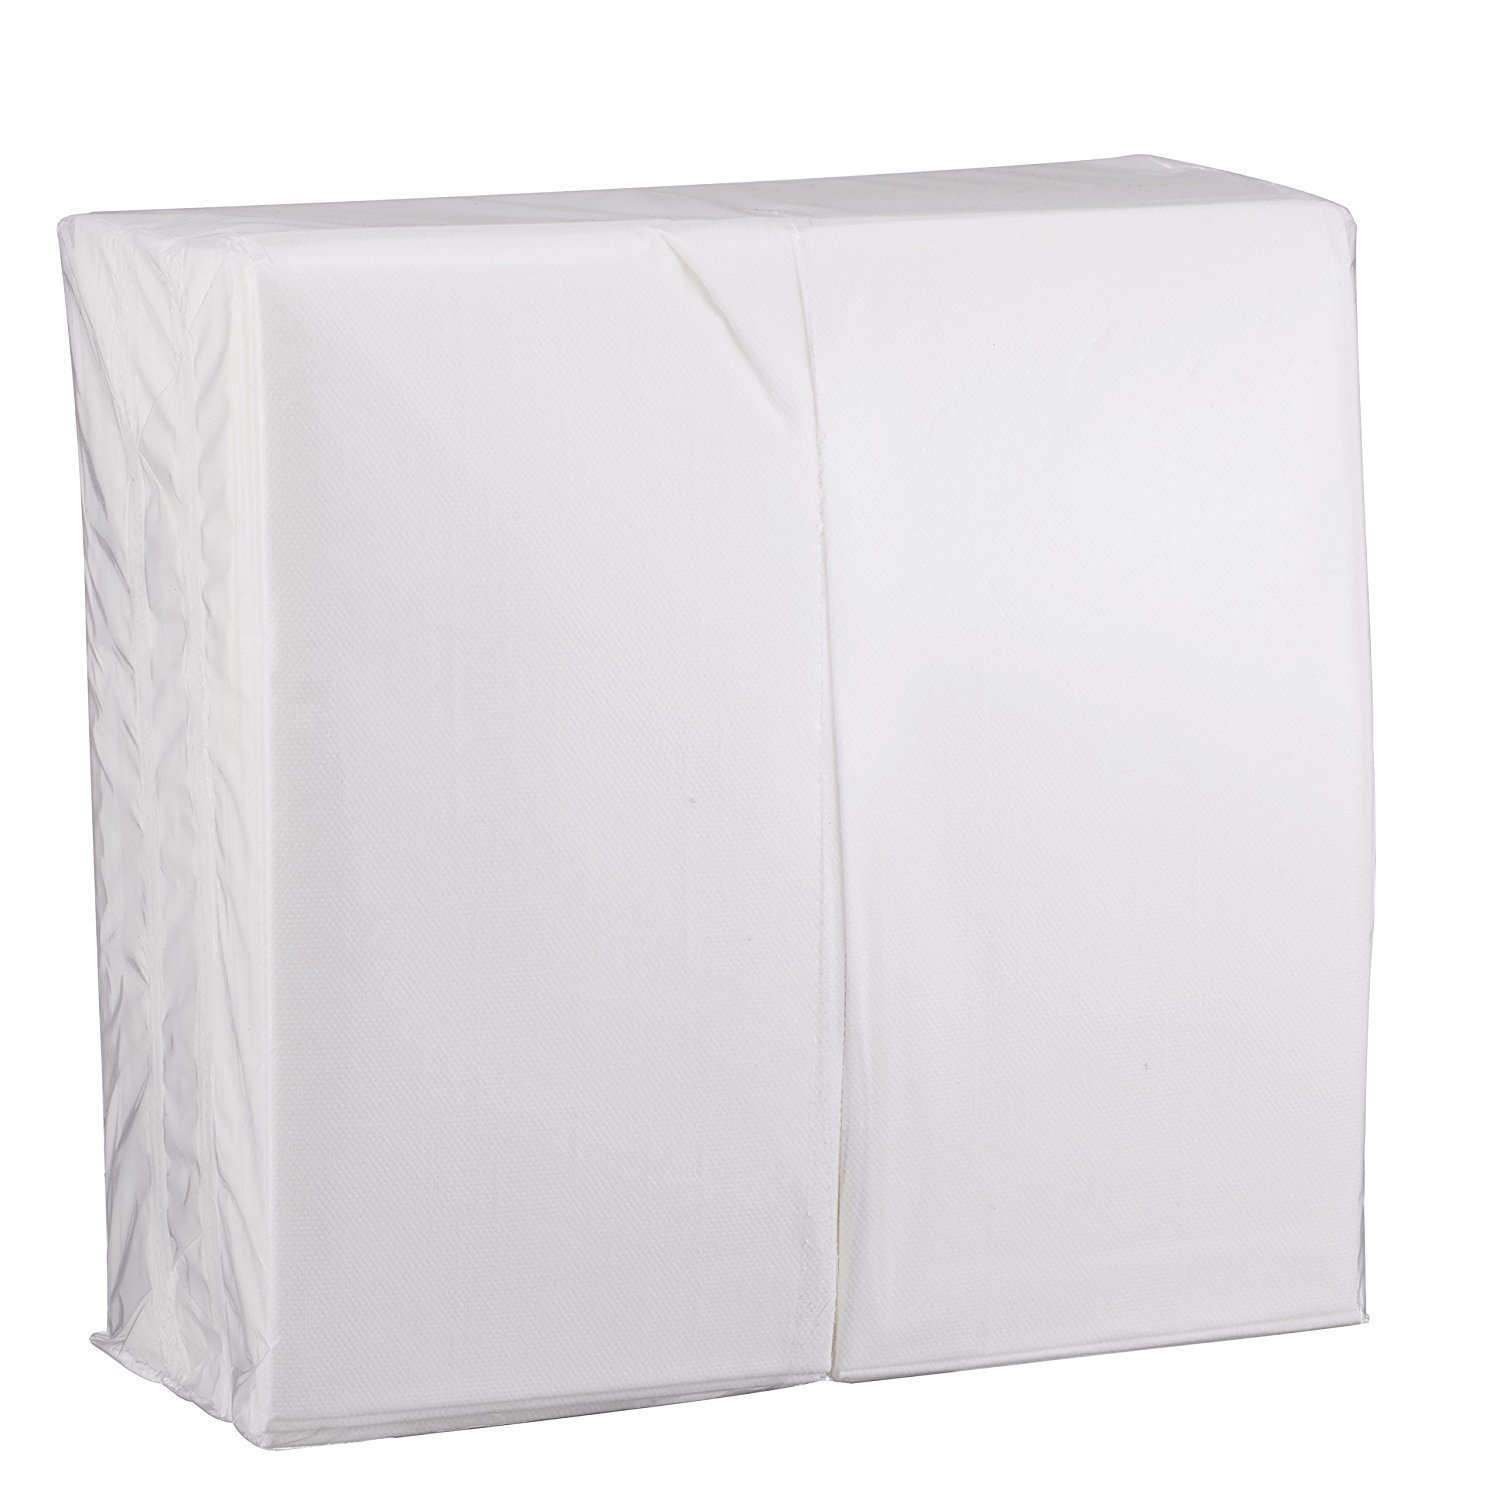 200 Pack Airlaid Linen-Like Bath Tissue for Kitchen Bathroom or Weddings White Cloth-Like Towel Soft Absorbent Disposable Guest Towels Paper Napkins eDayDeal